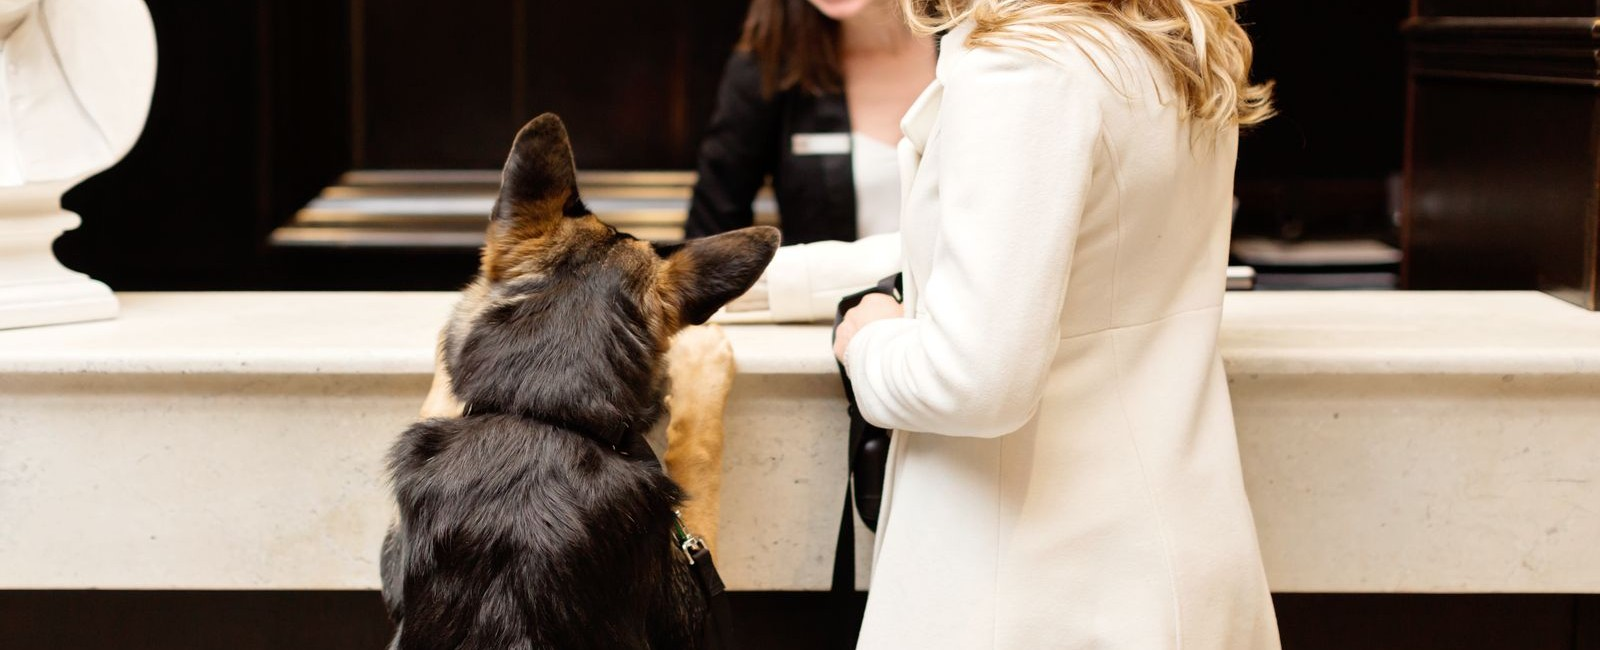 German Shepard dog at the check in desk along side his woman owner.